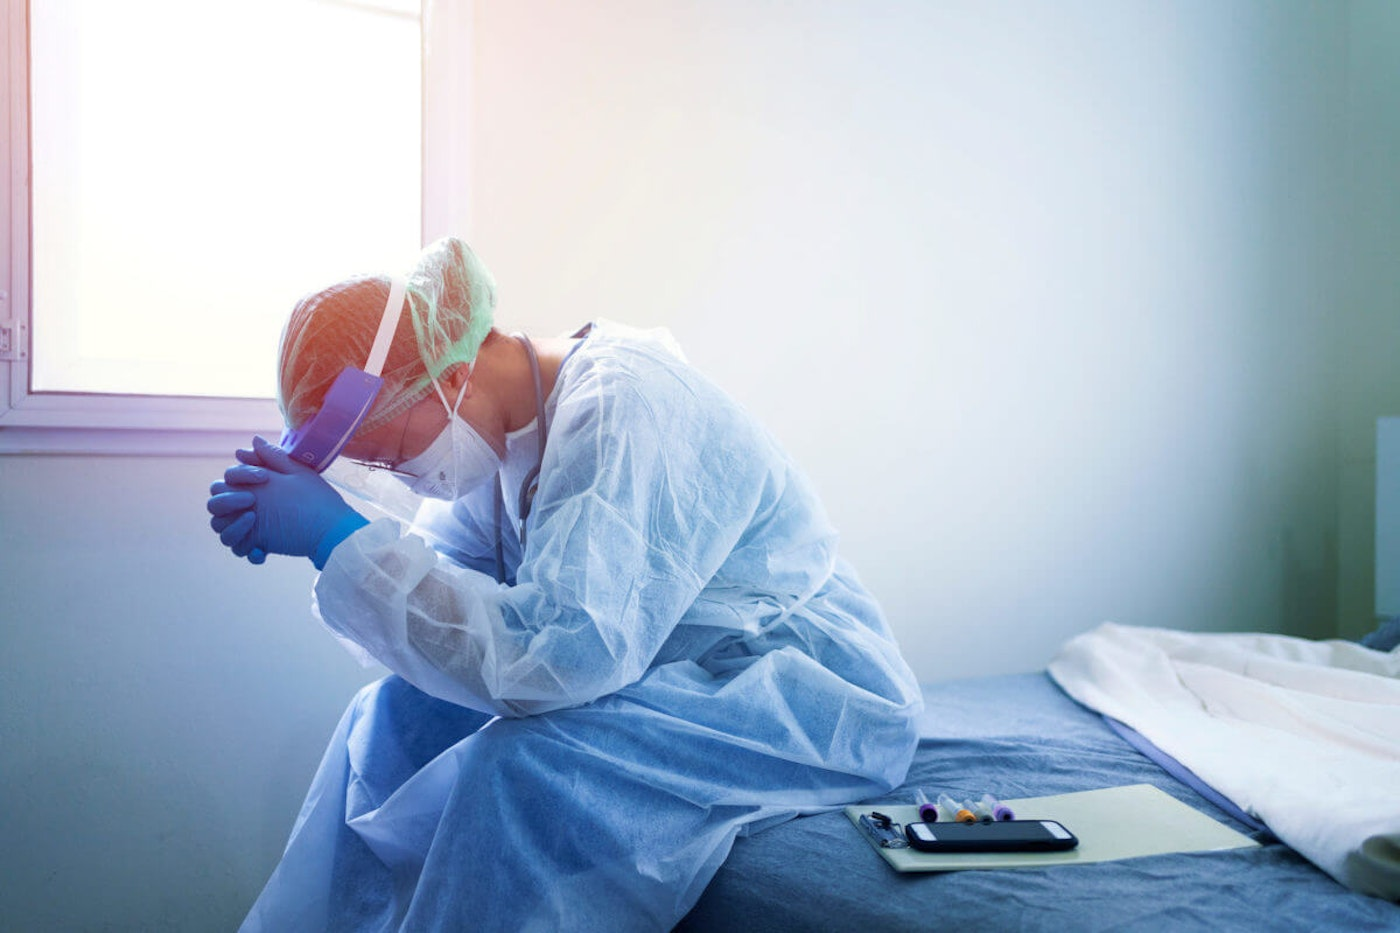 While Americans celebrate Thanksgiving, doctors, nurses, and healthcare workers will still be on the frontlines of the pandemic.